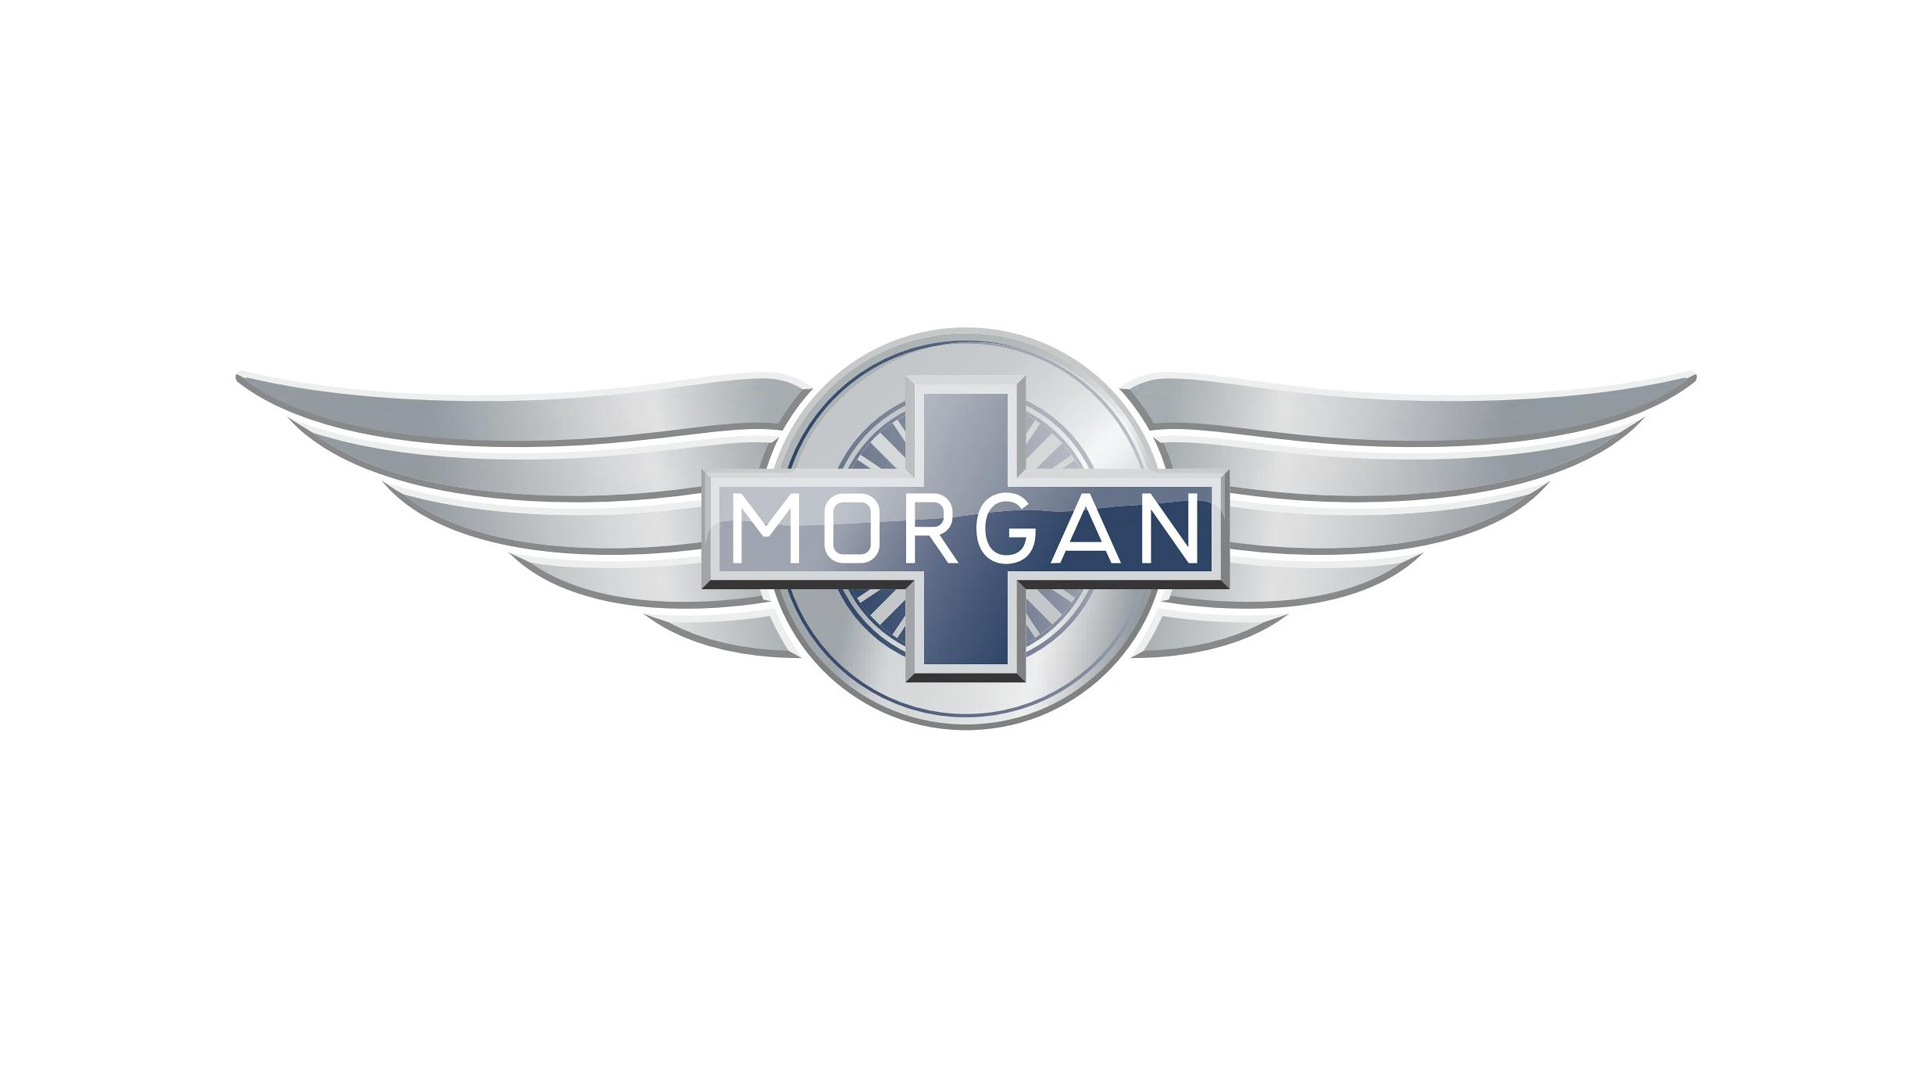 Morgan-motor-co-badge